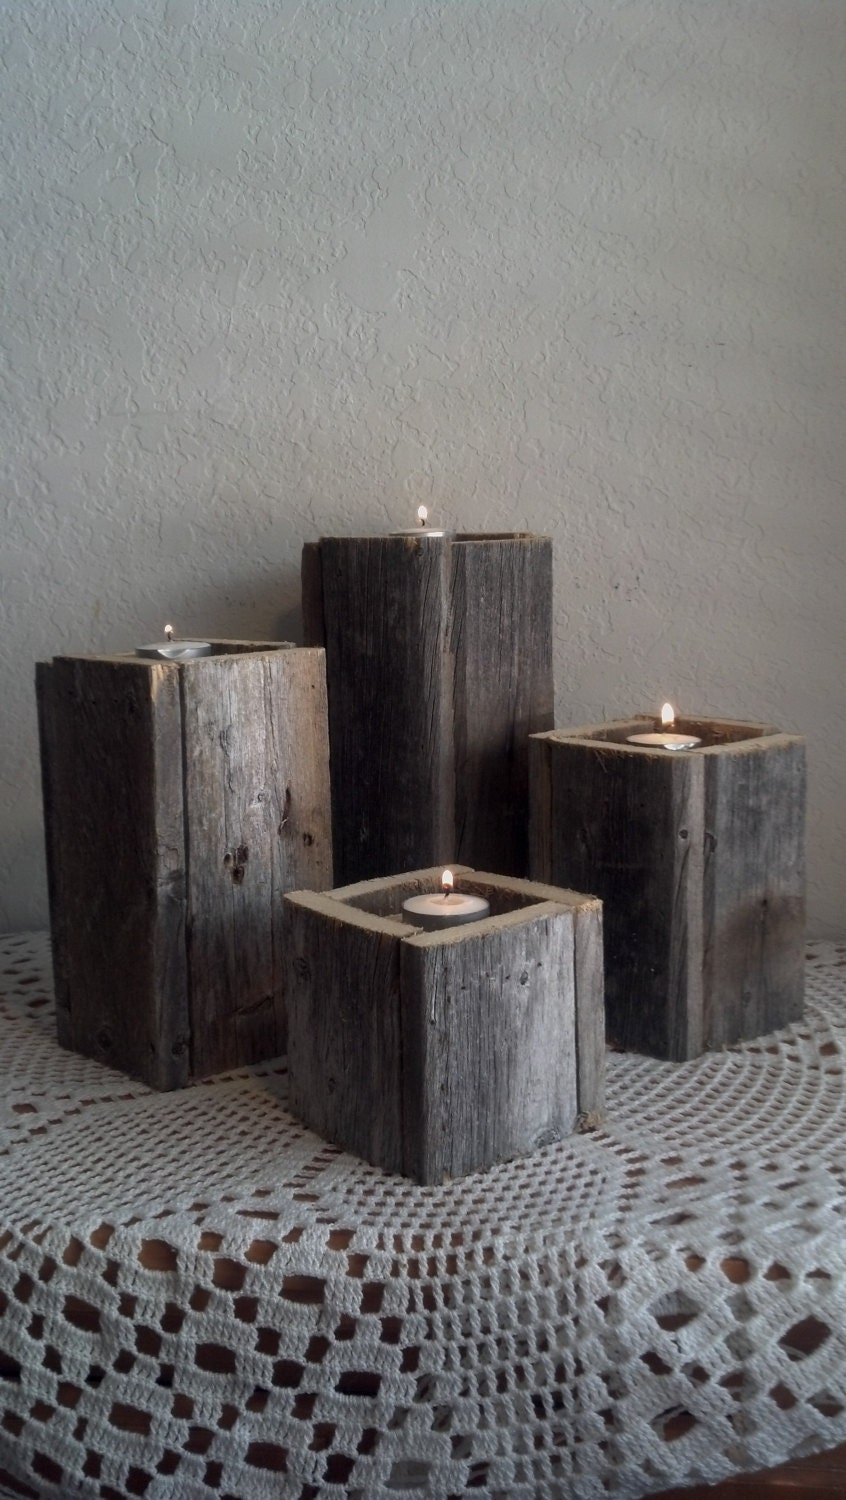 Rustic wooden candle holders